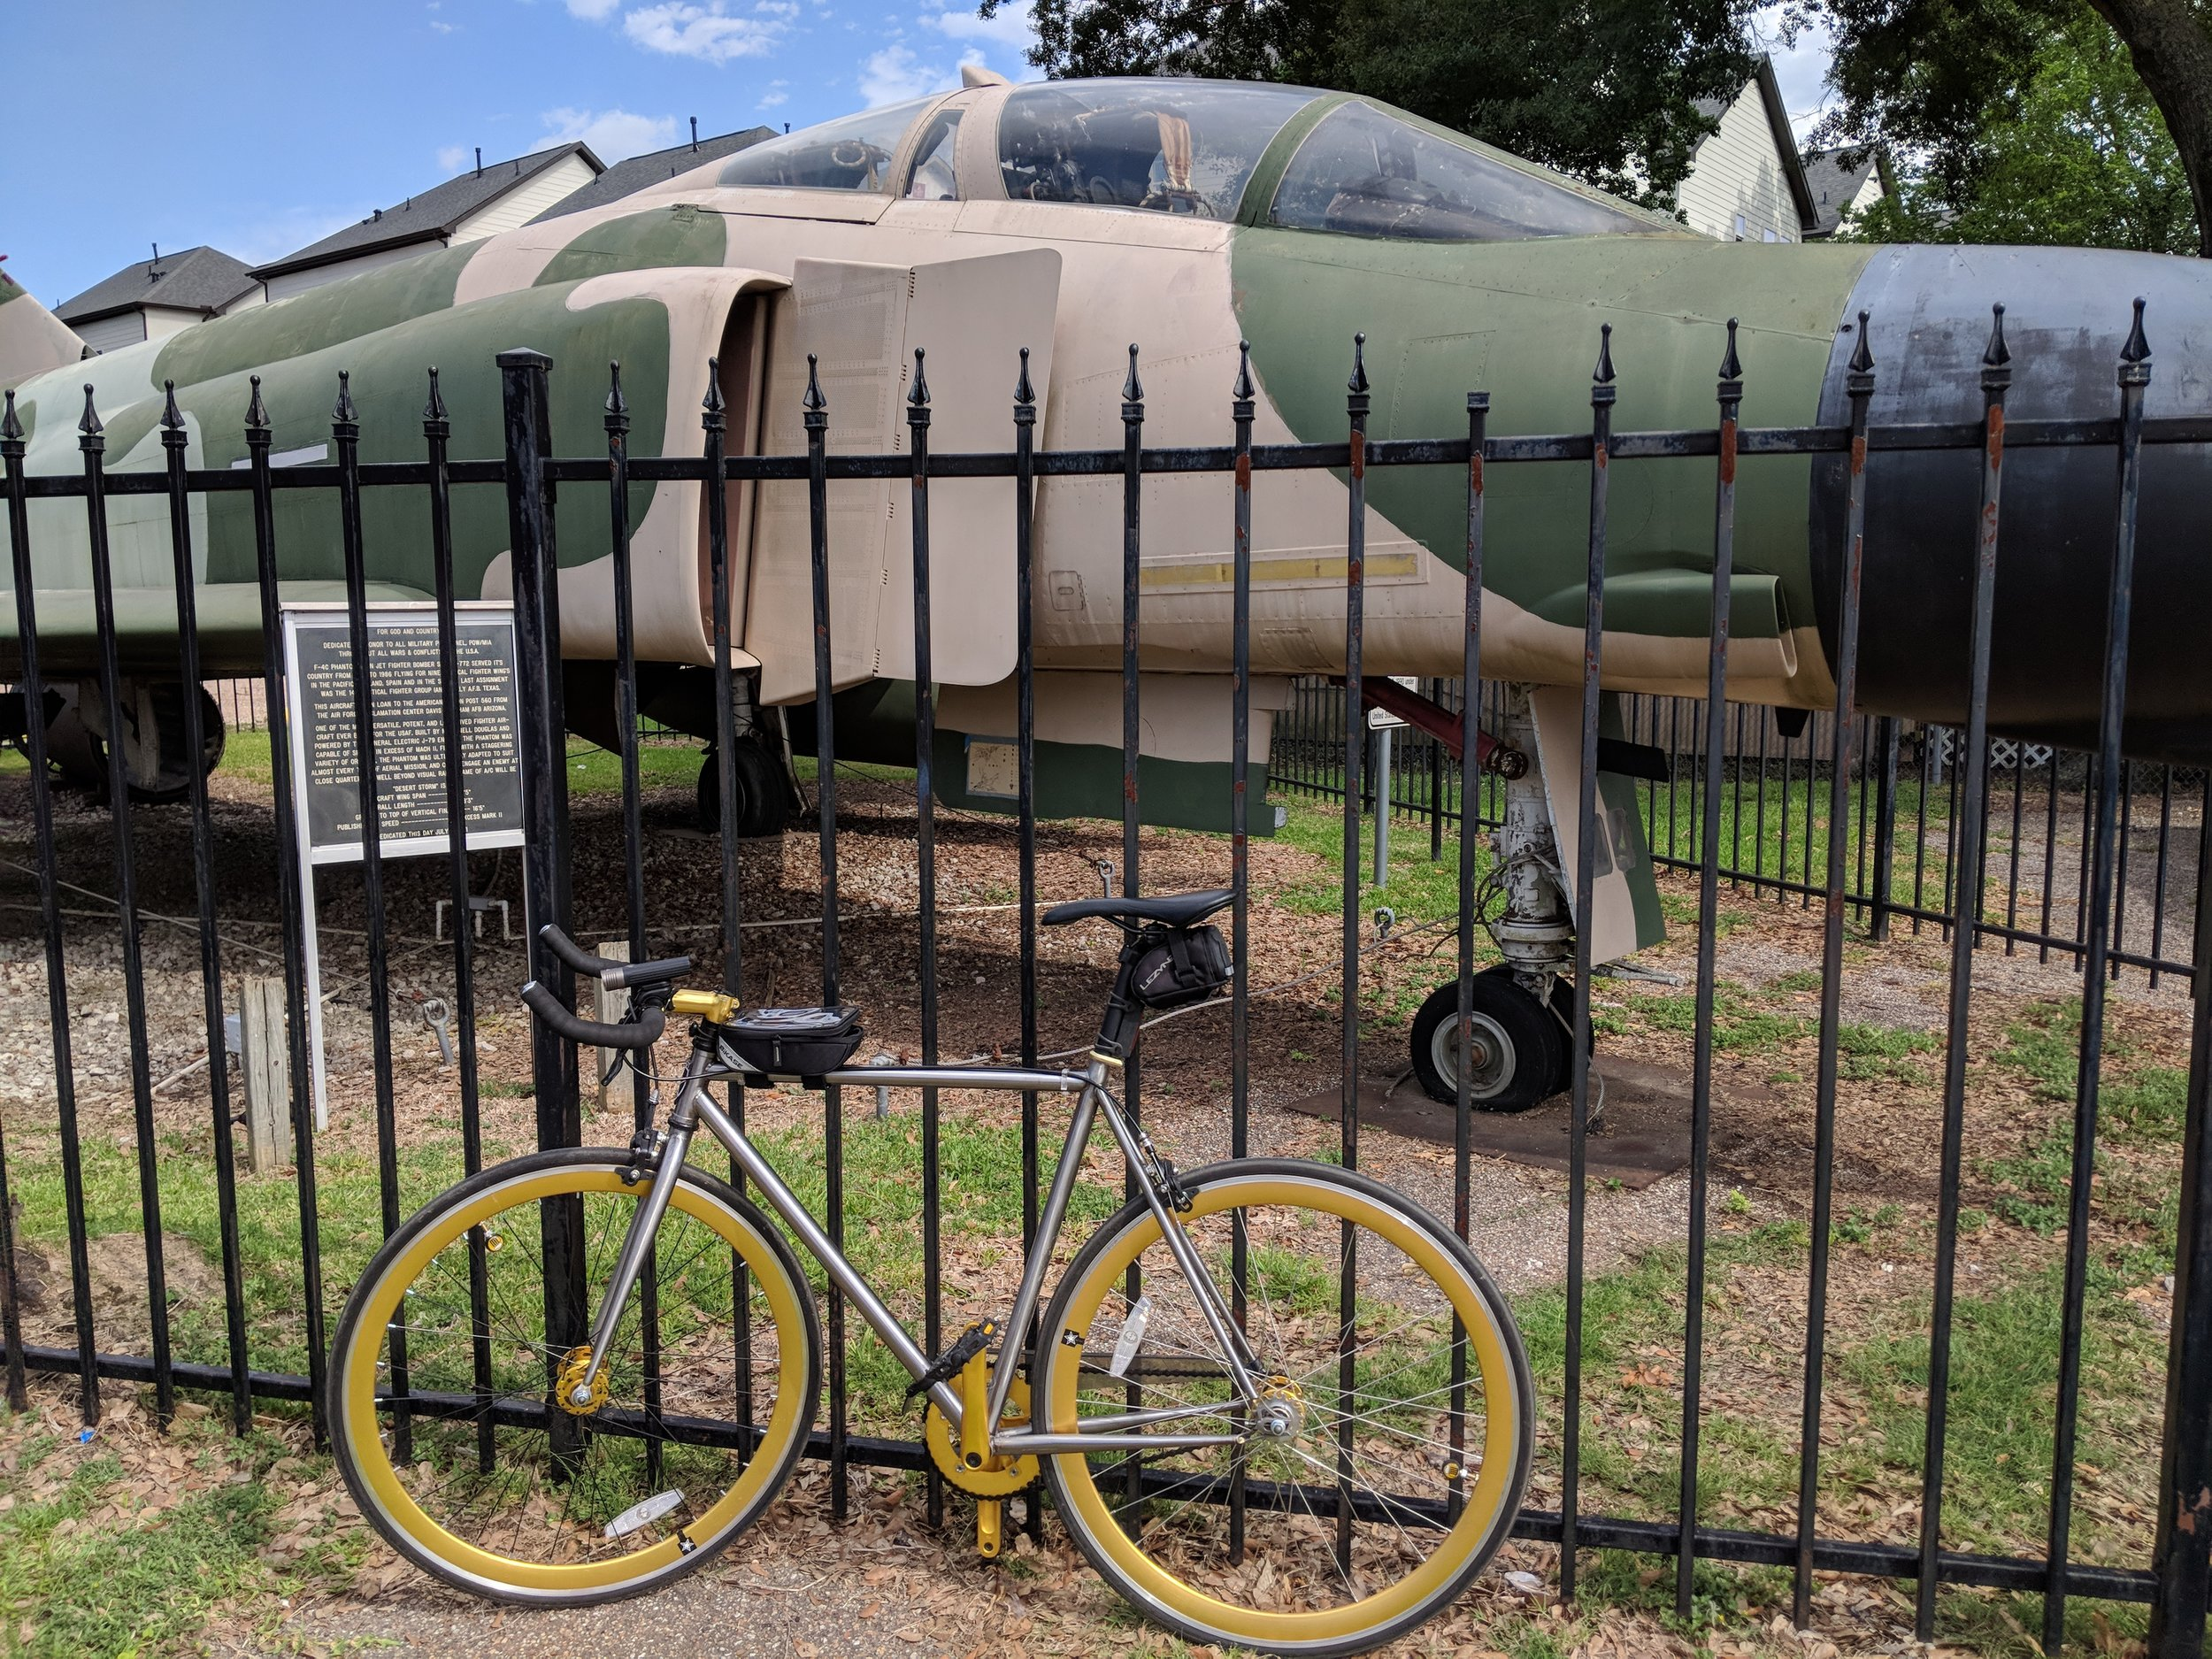 American Legion Jet and a sweet whip.